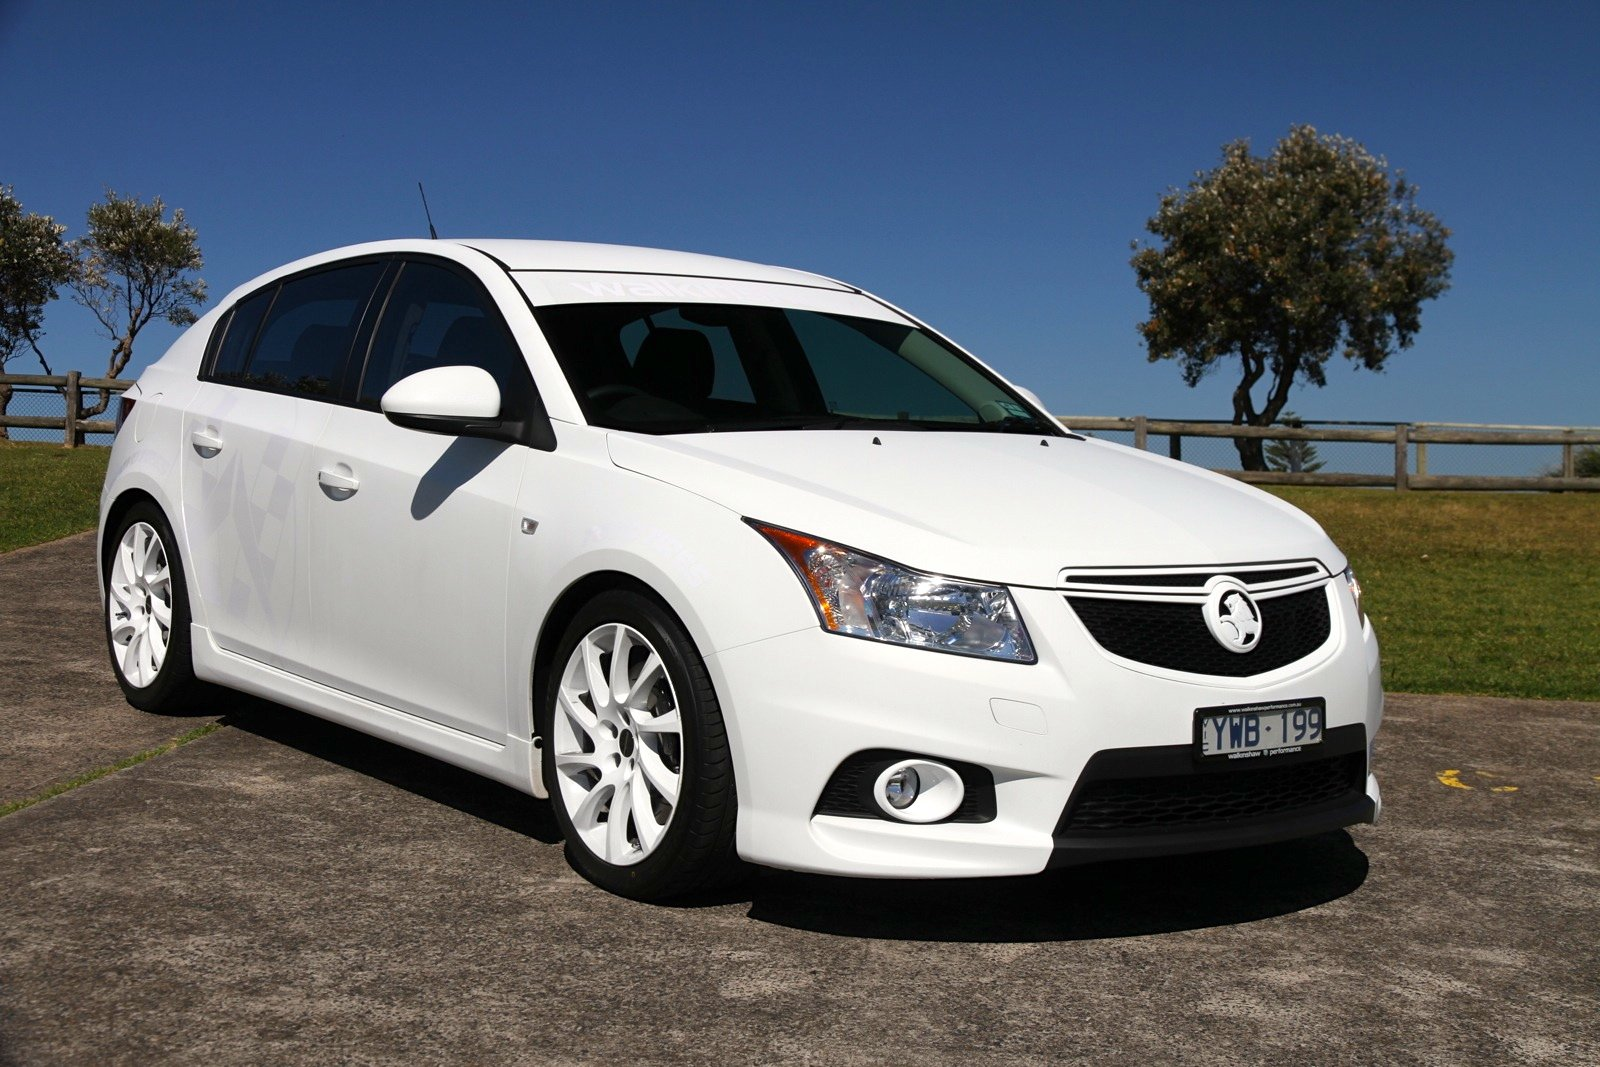 2012 holden cruze sedan review autos post autos post. Black Bedroom Furniture Sets. Home Design Ideas